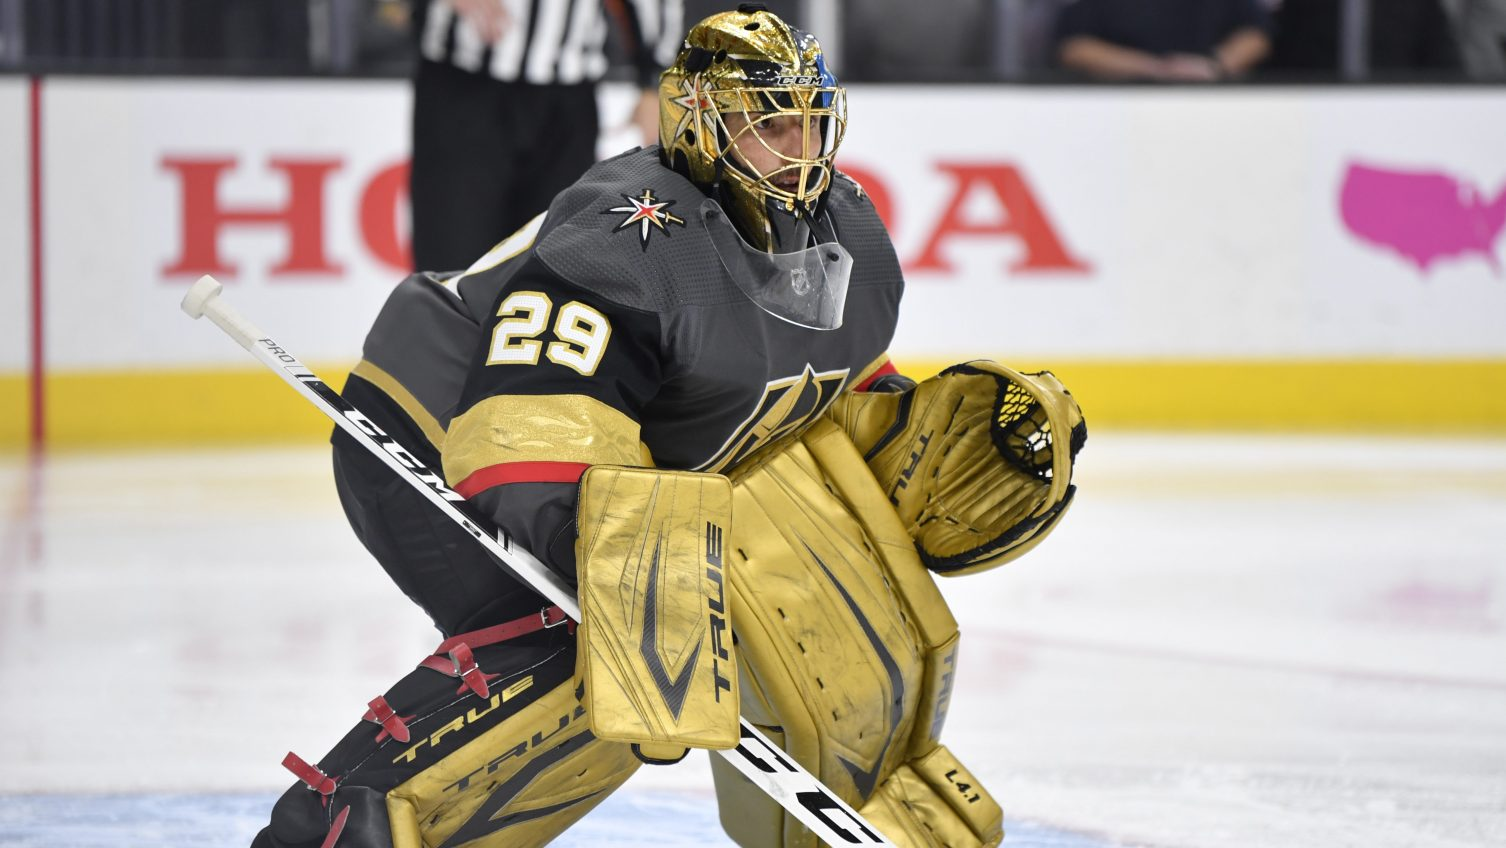 What the Blackhawks should expect from Marc-Andre Fleury this season